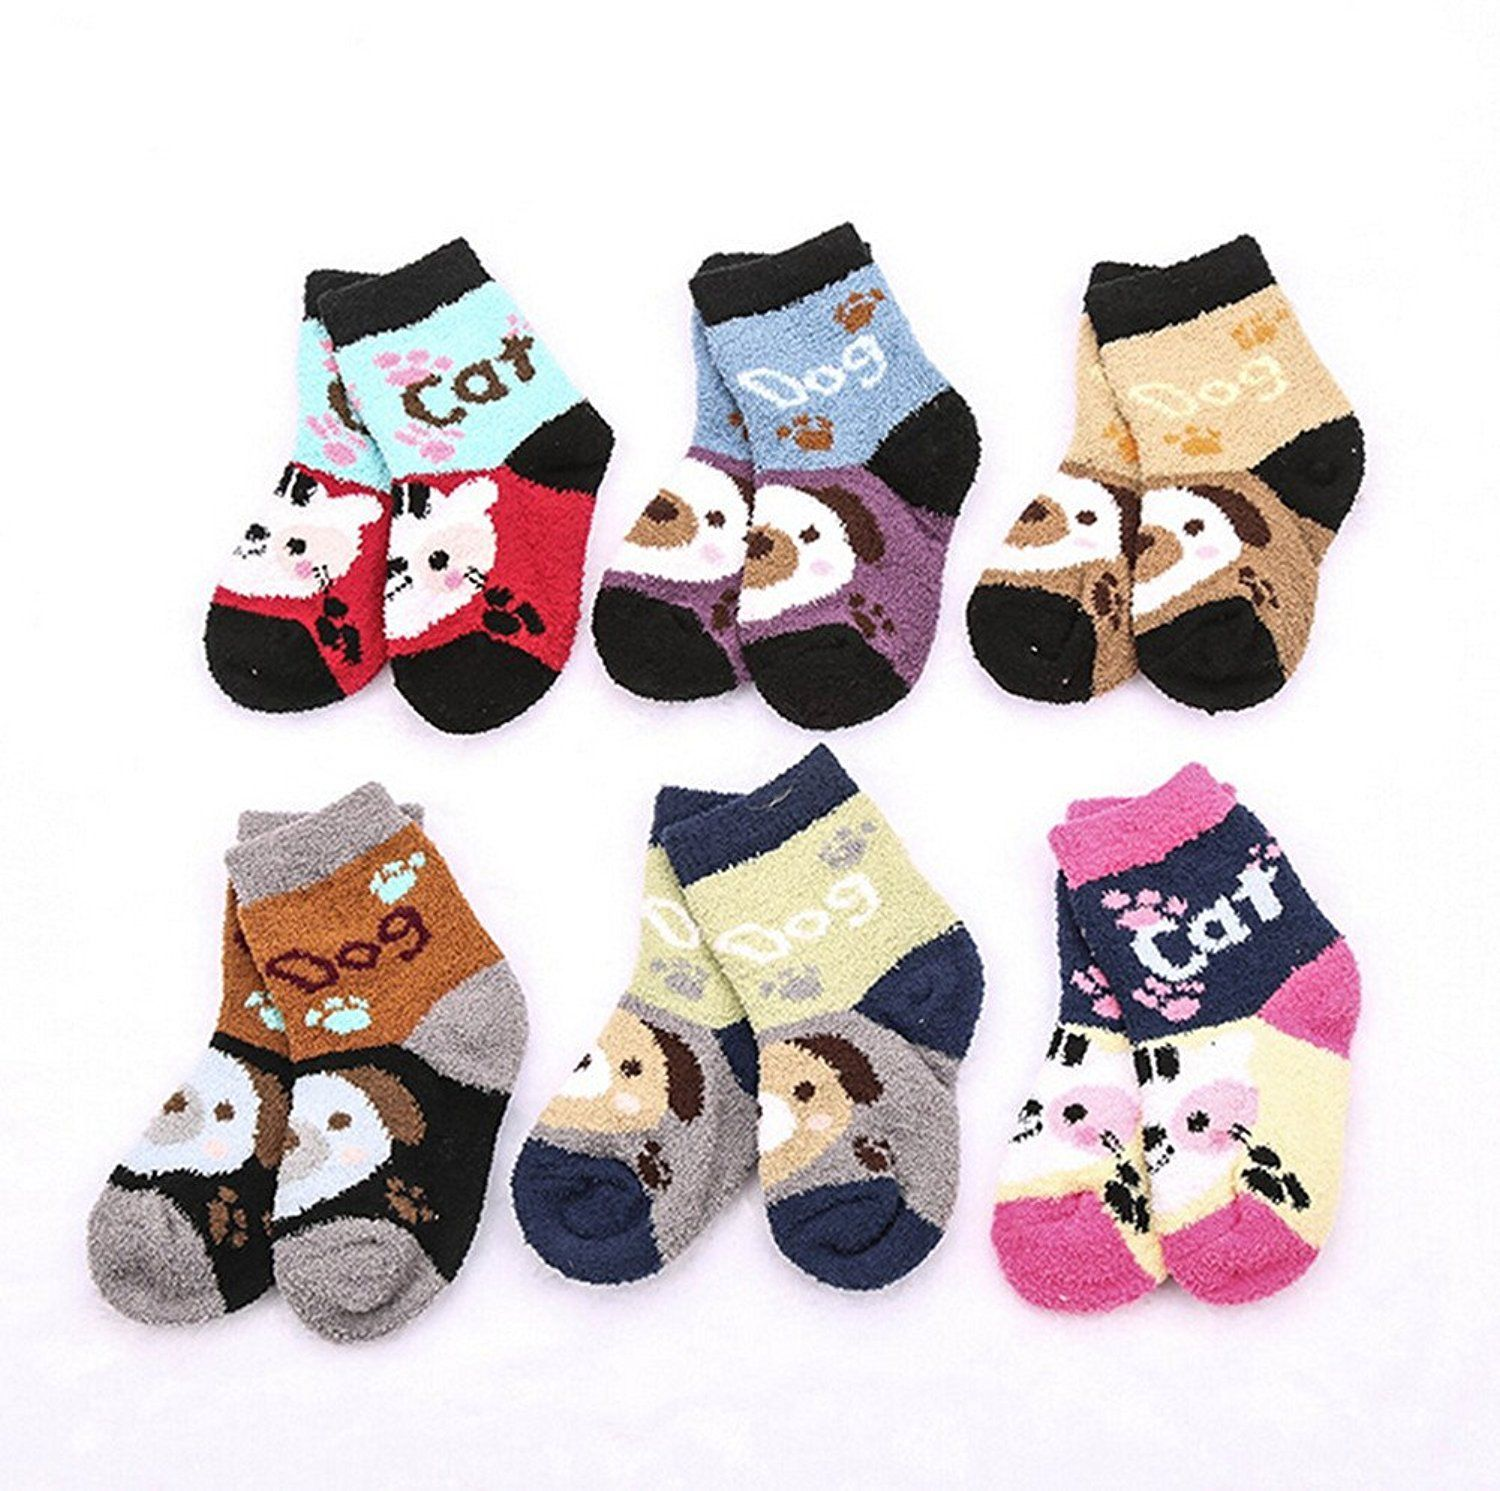 BT-RSTT Super Warm Baby Fuzzy Soft Thick Socks Animal 6 pairs 1-3 Year old. Fits up to 1-3 Years Old. Material - Coral fleece. Includes 6 pairs of unique assorted colors. Keep your little one's feet warm and comfortable in autumn and winter. Sole Length: 4.5 inches (12 cm).